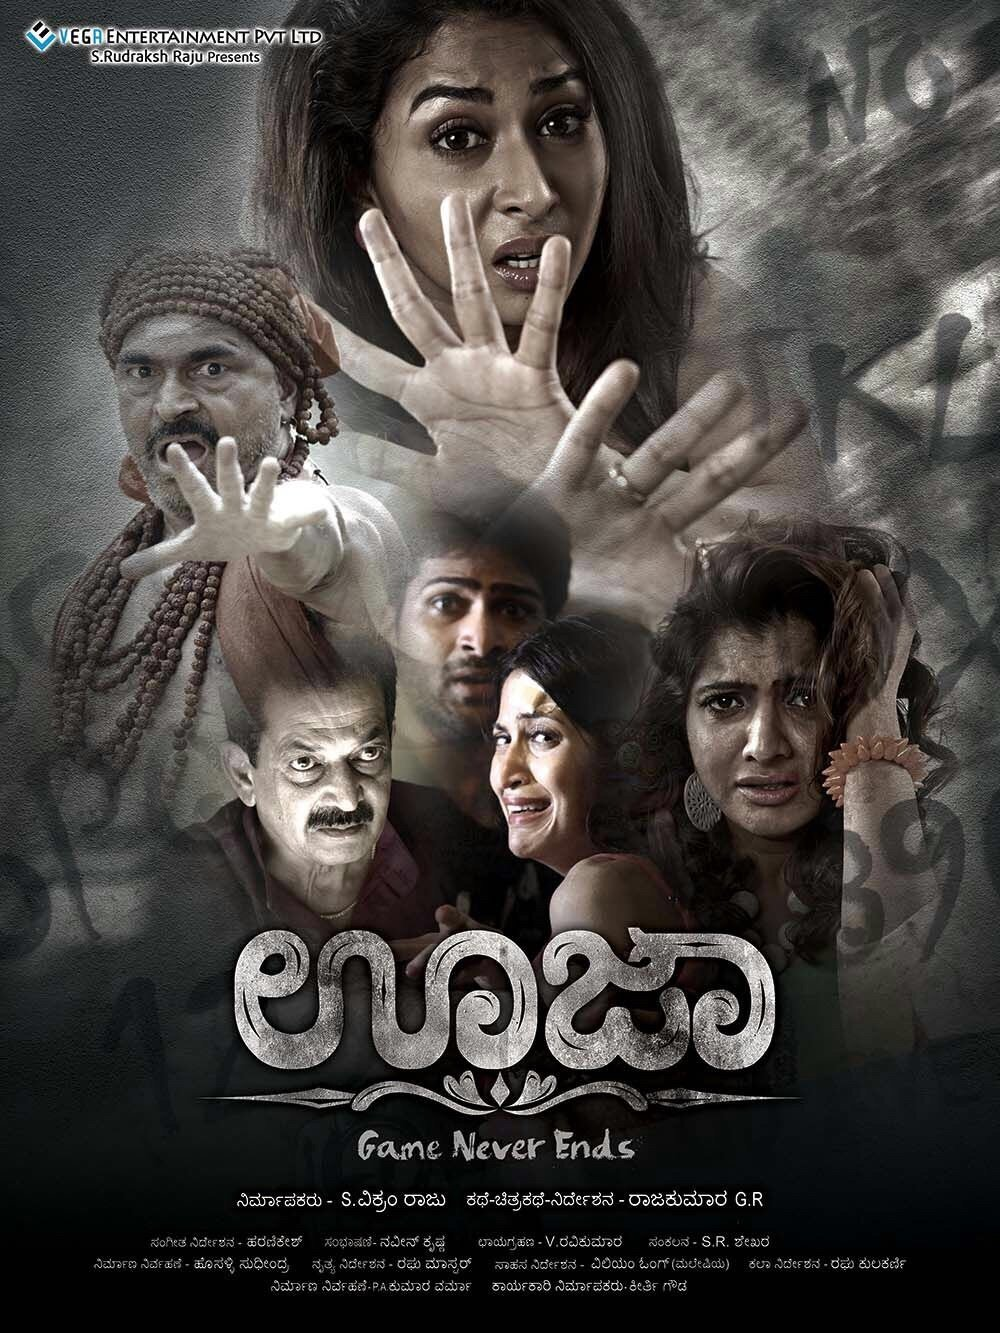 Aata Game Never Ends (2019) Telugu WEB-DL 480p 720p GDrive ESub